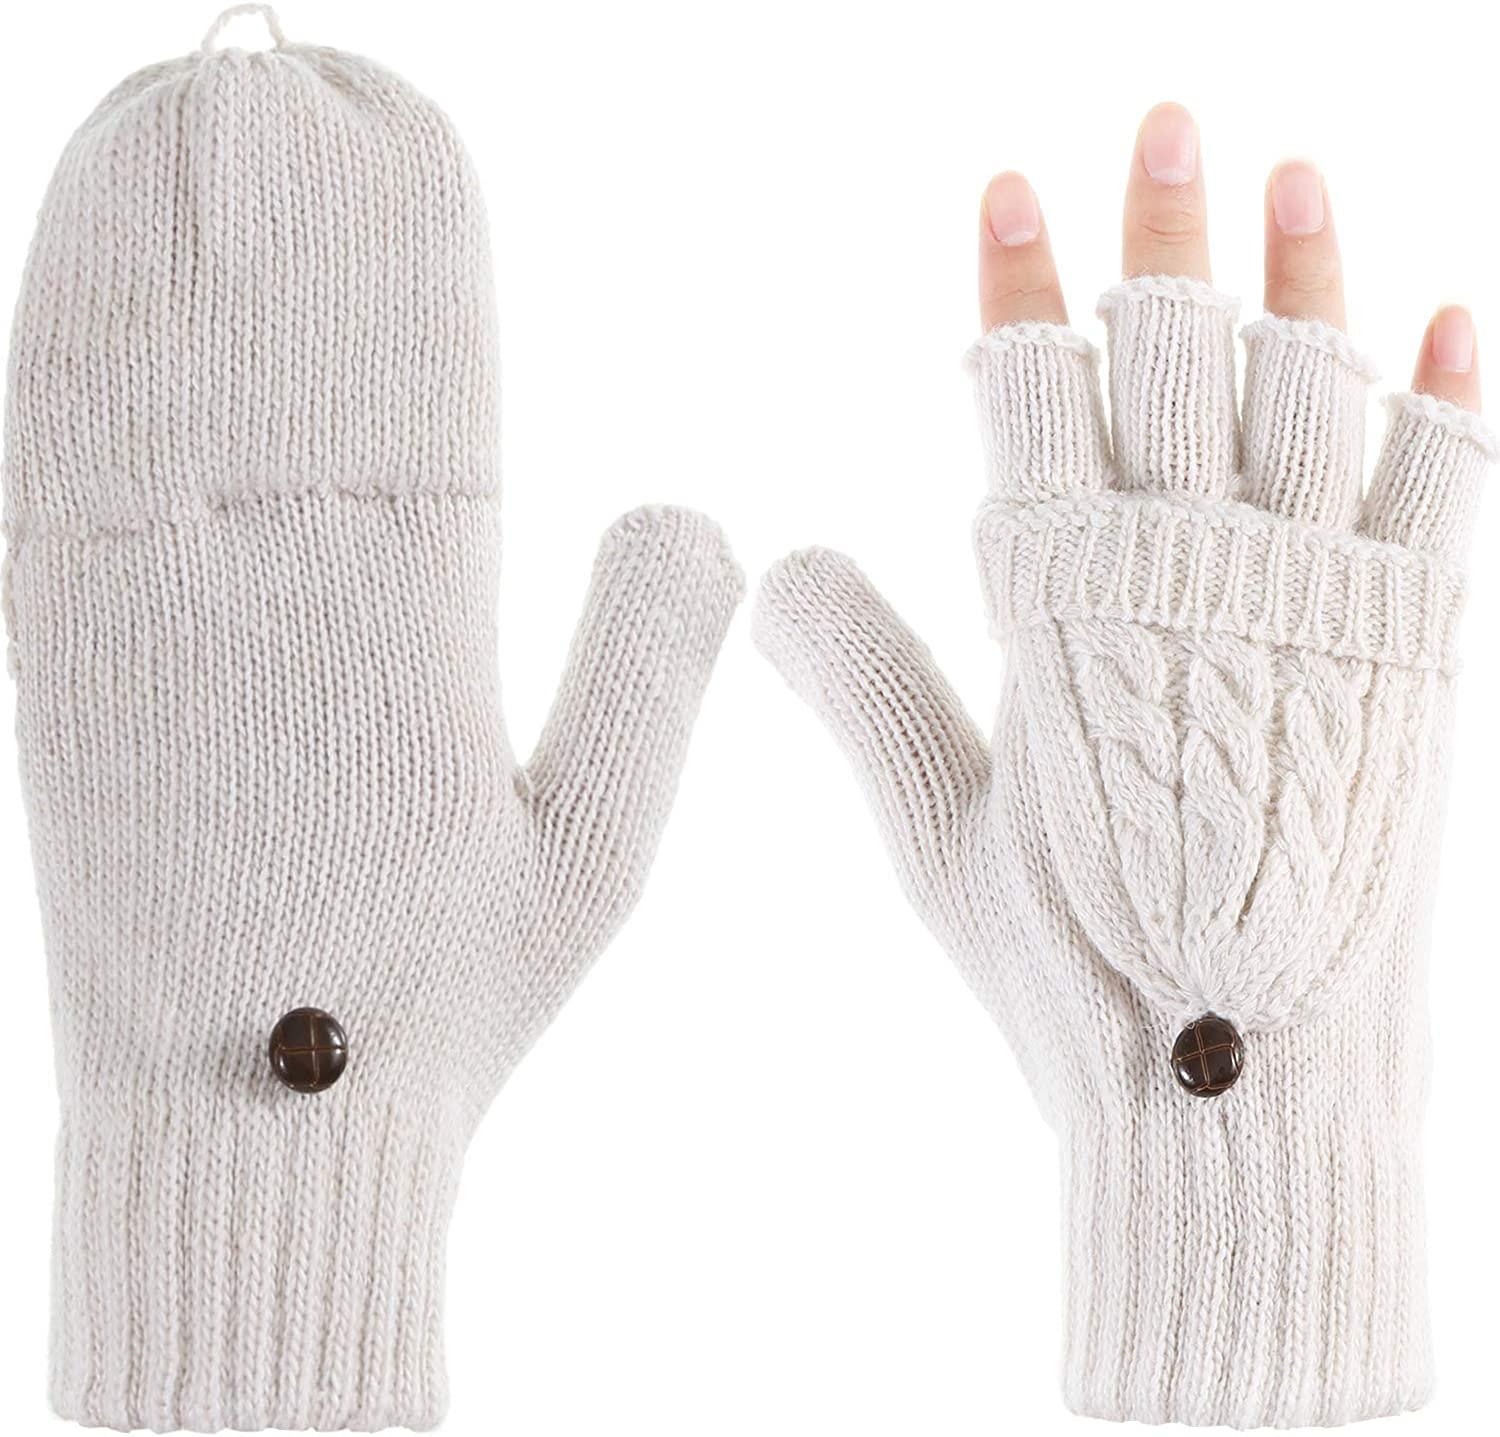 Tatuo Women Convertible Glove Cable Knit Glove Half Finger Mitten with Cover for Cold Days